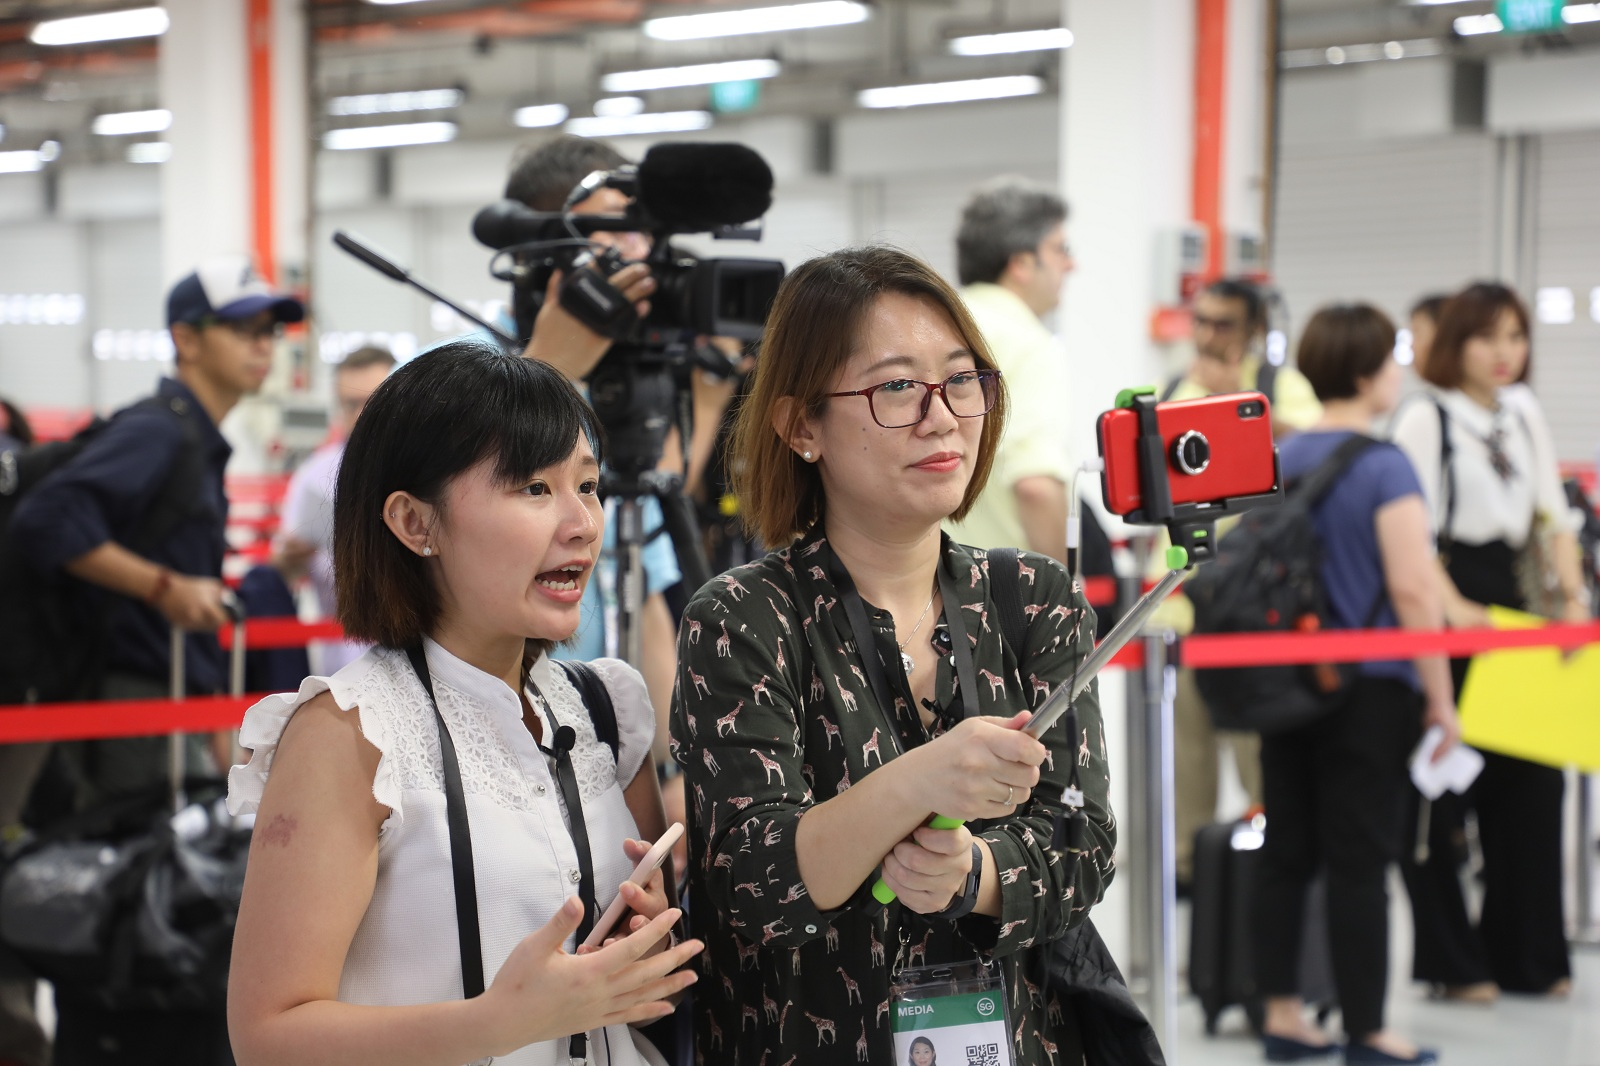 in the media ceter located in the F1 Pit Building of Singapore, some reporters have started their work.JPG